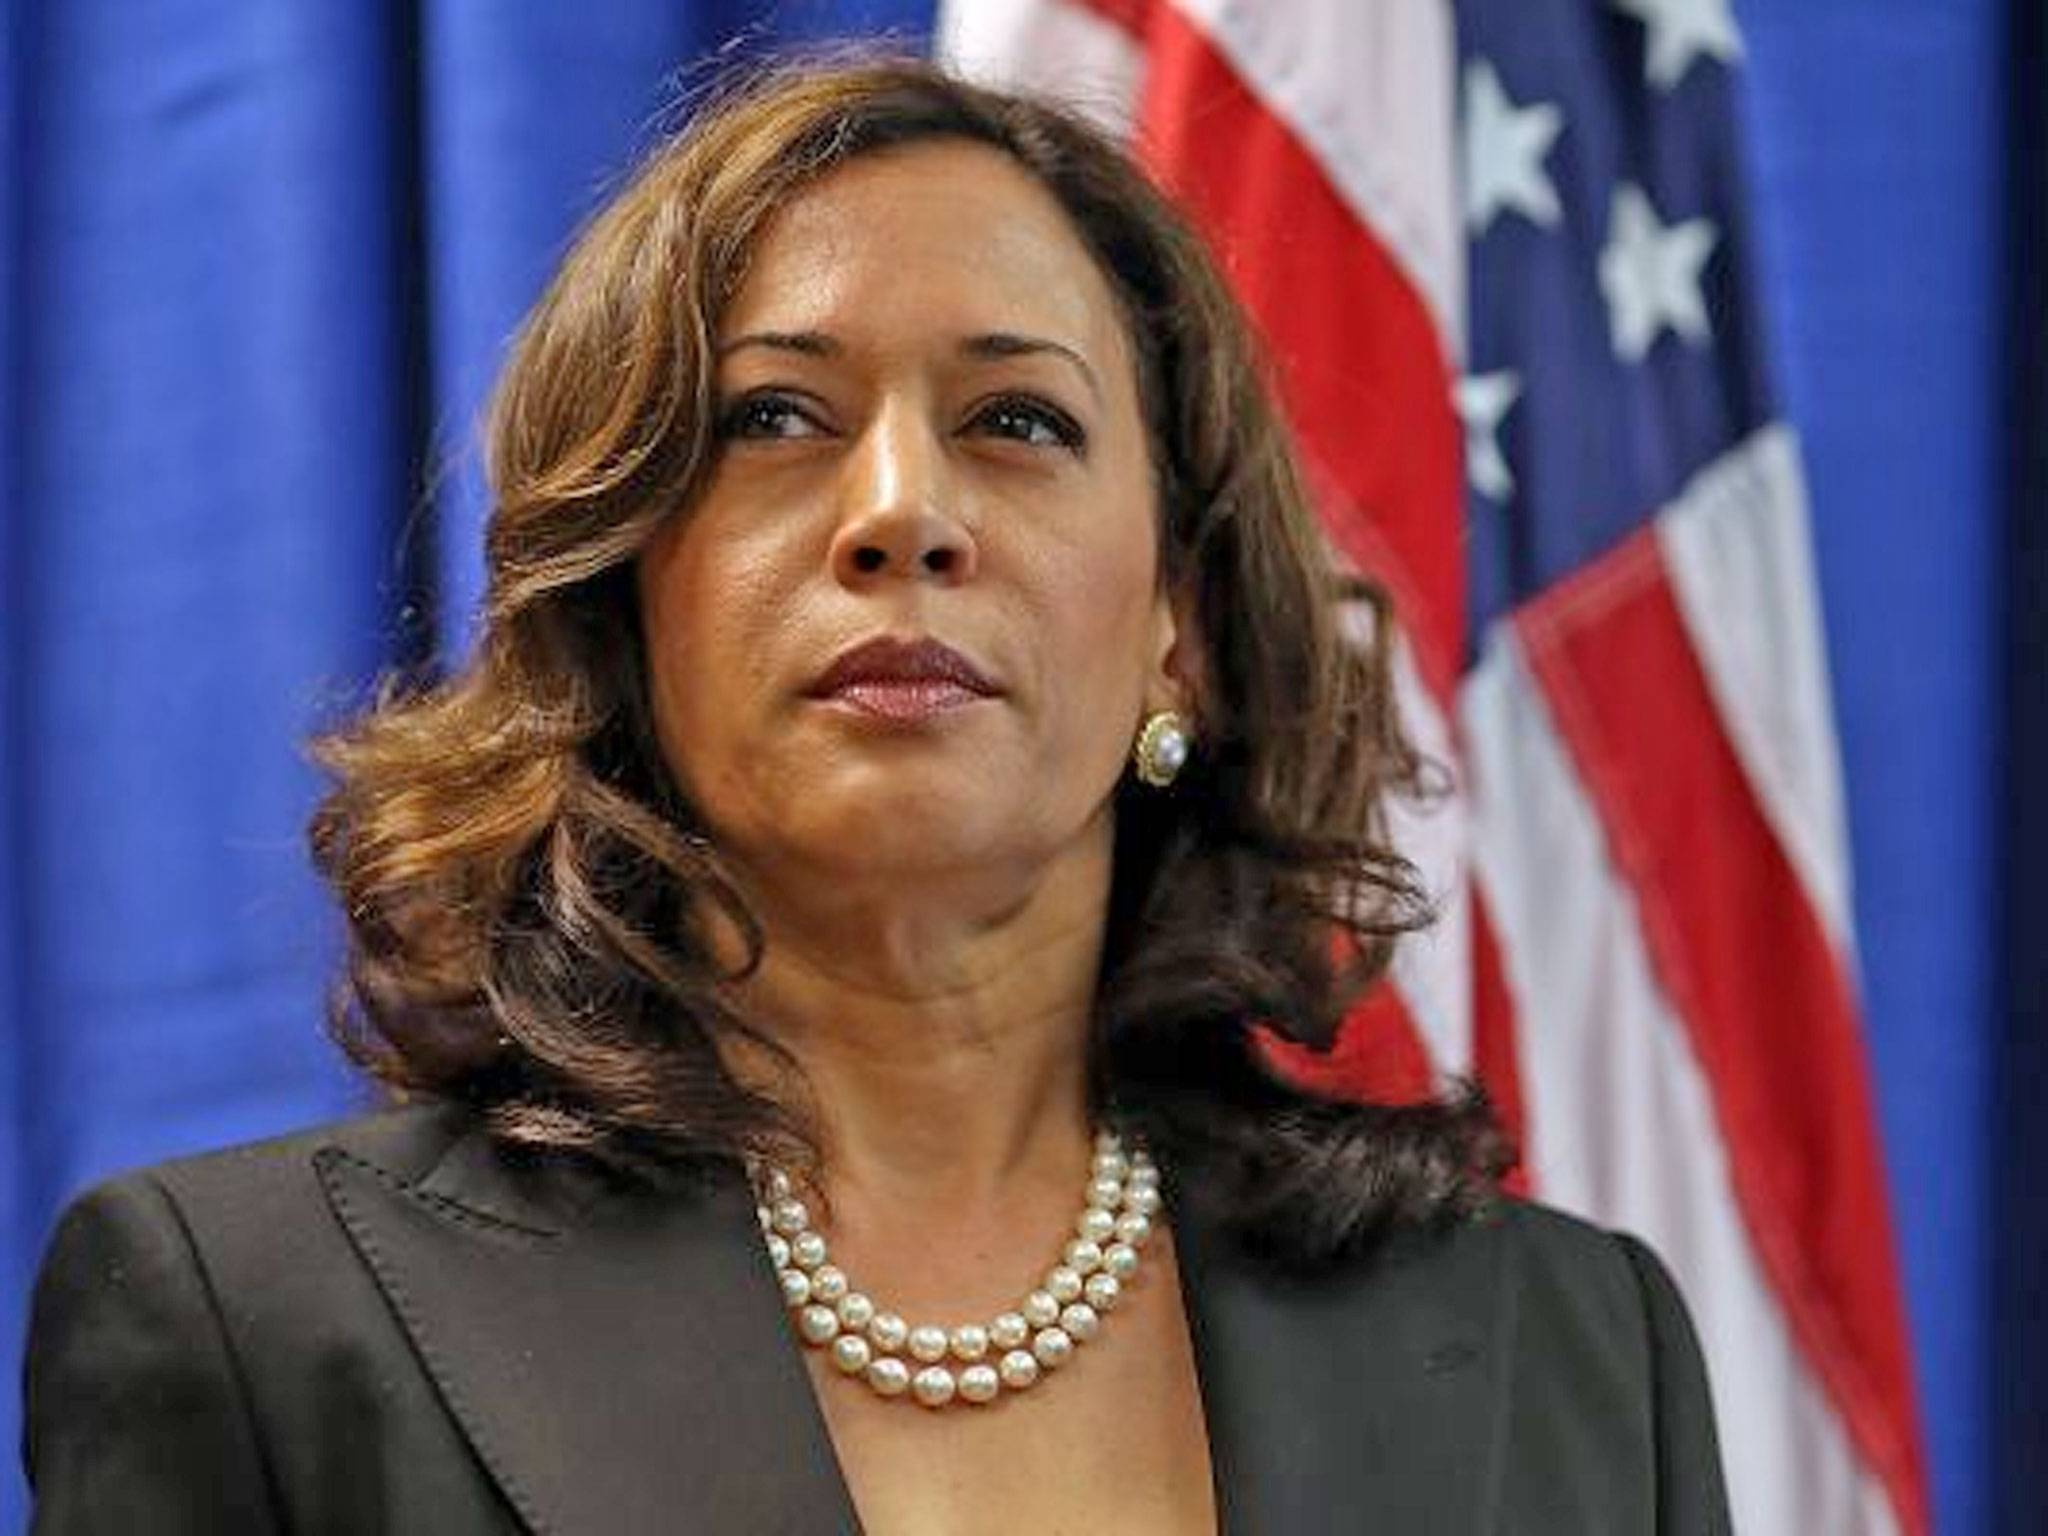 Impact Players: Kamala Harris — California Attorney General California's first female attorney general